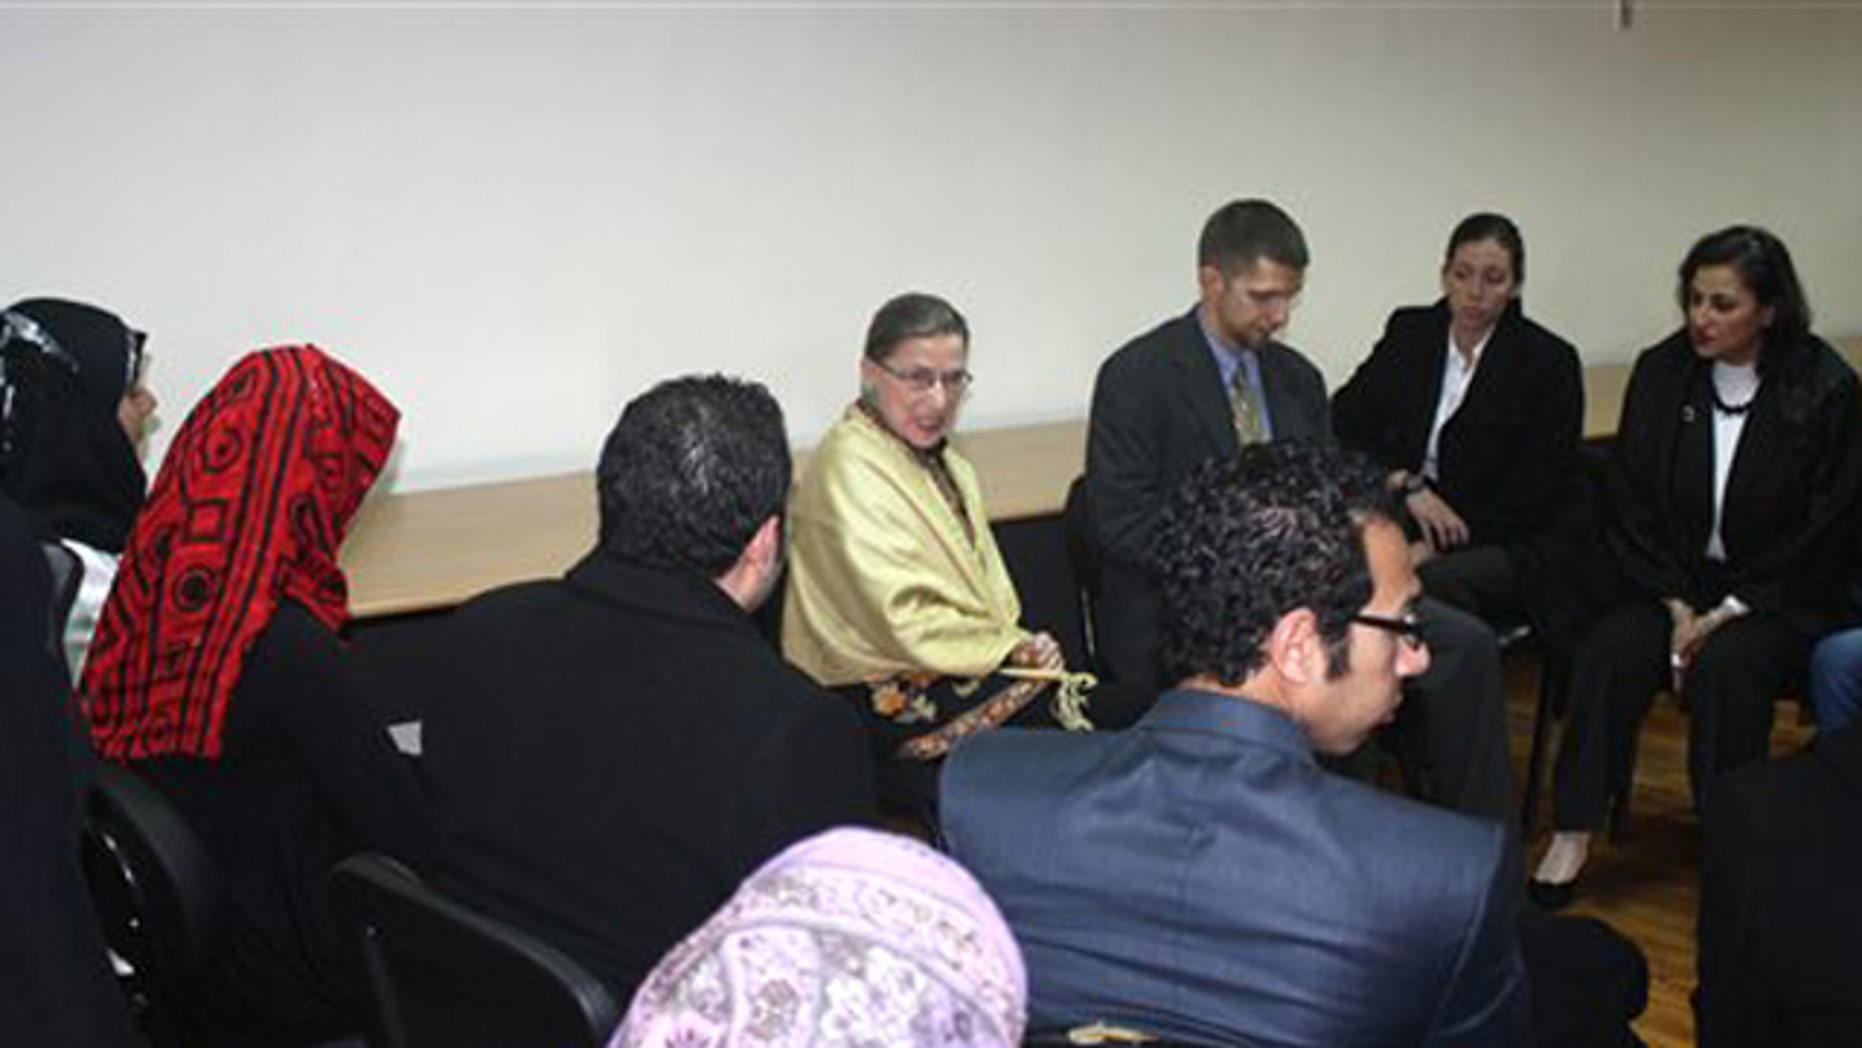 Feb. 1, 2012: Supreme Court Justice Ruth Bader Ginsburg is seen in Cairo, Egypt meeting with lawyers, judges, academics and students in two North African countries in which popular uprisings toppled longtime leaders last year.